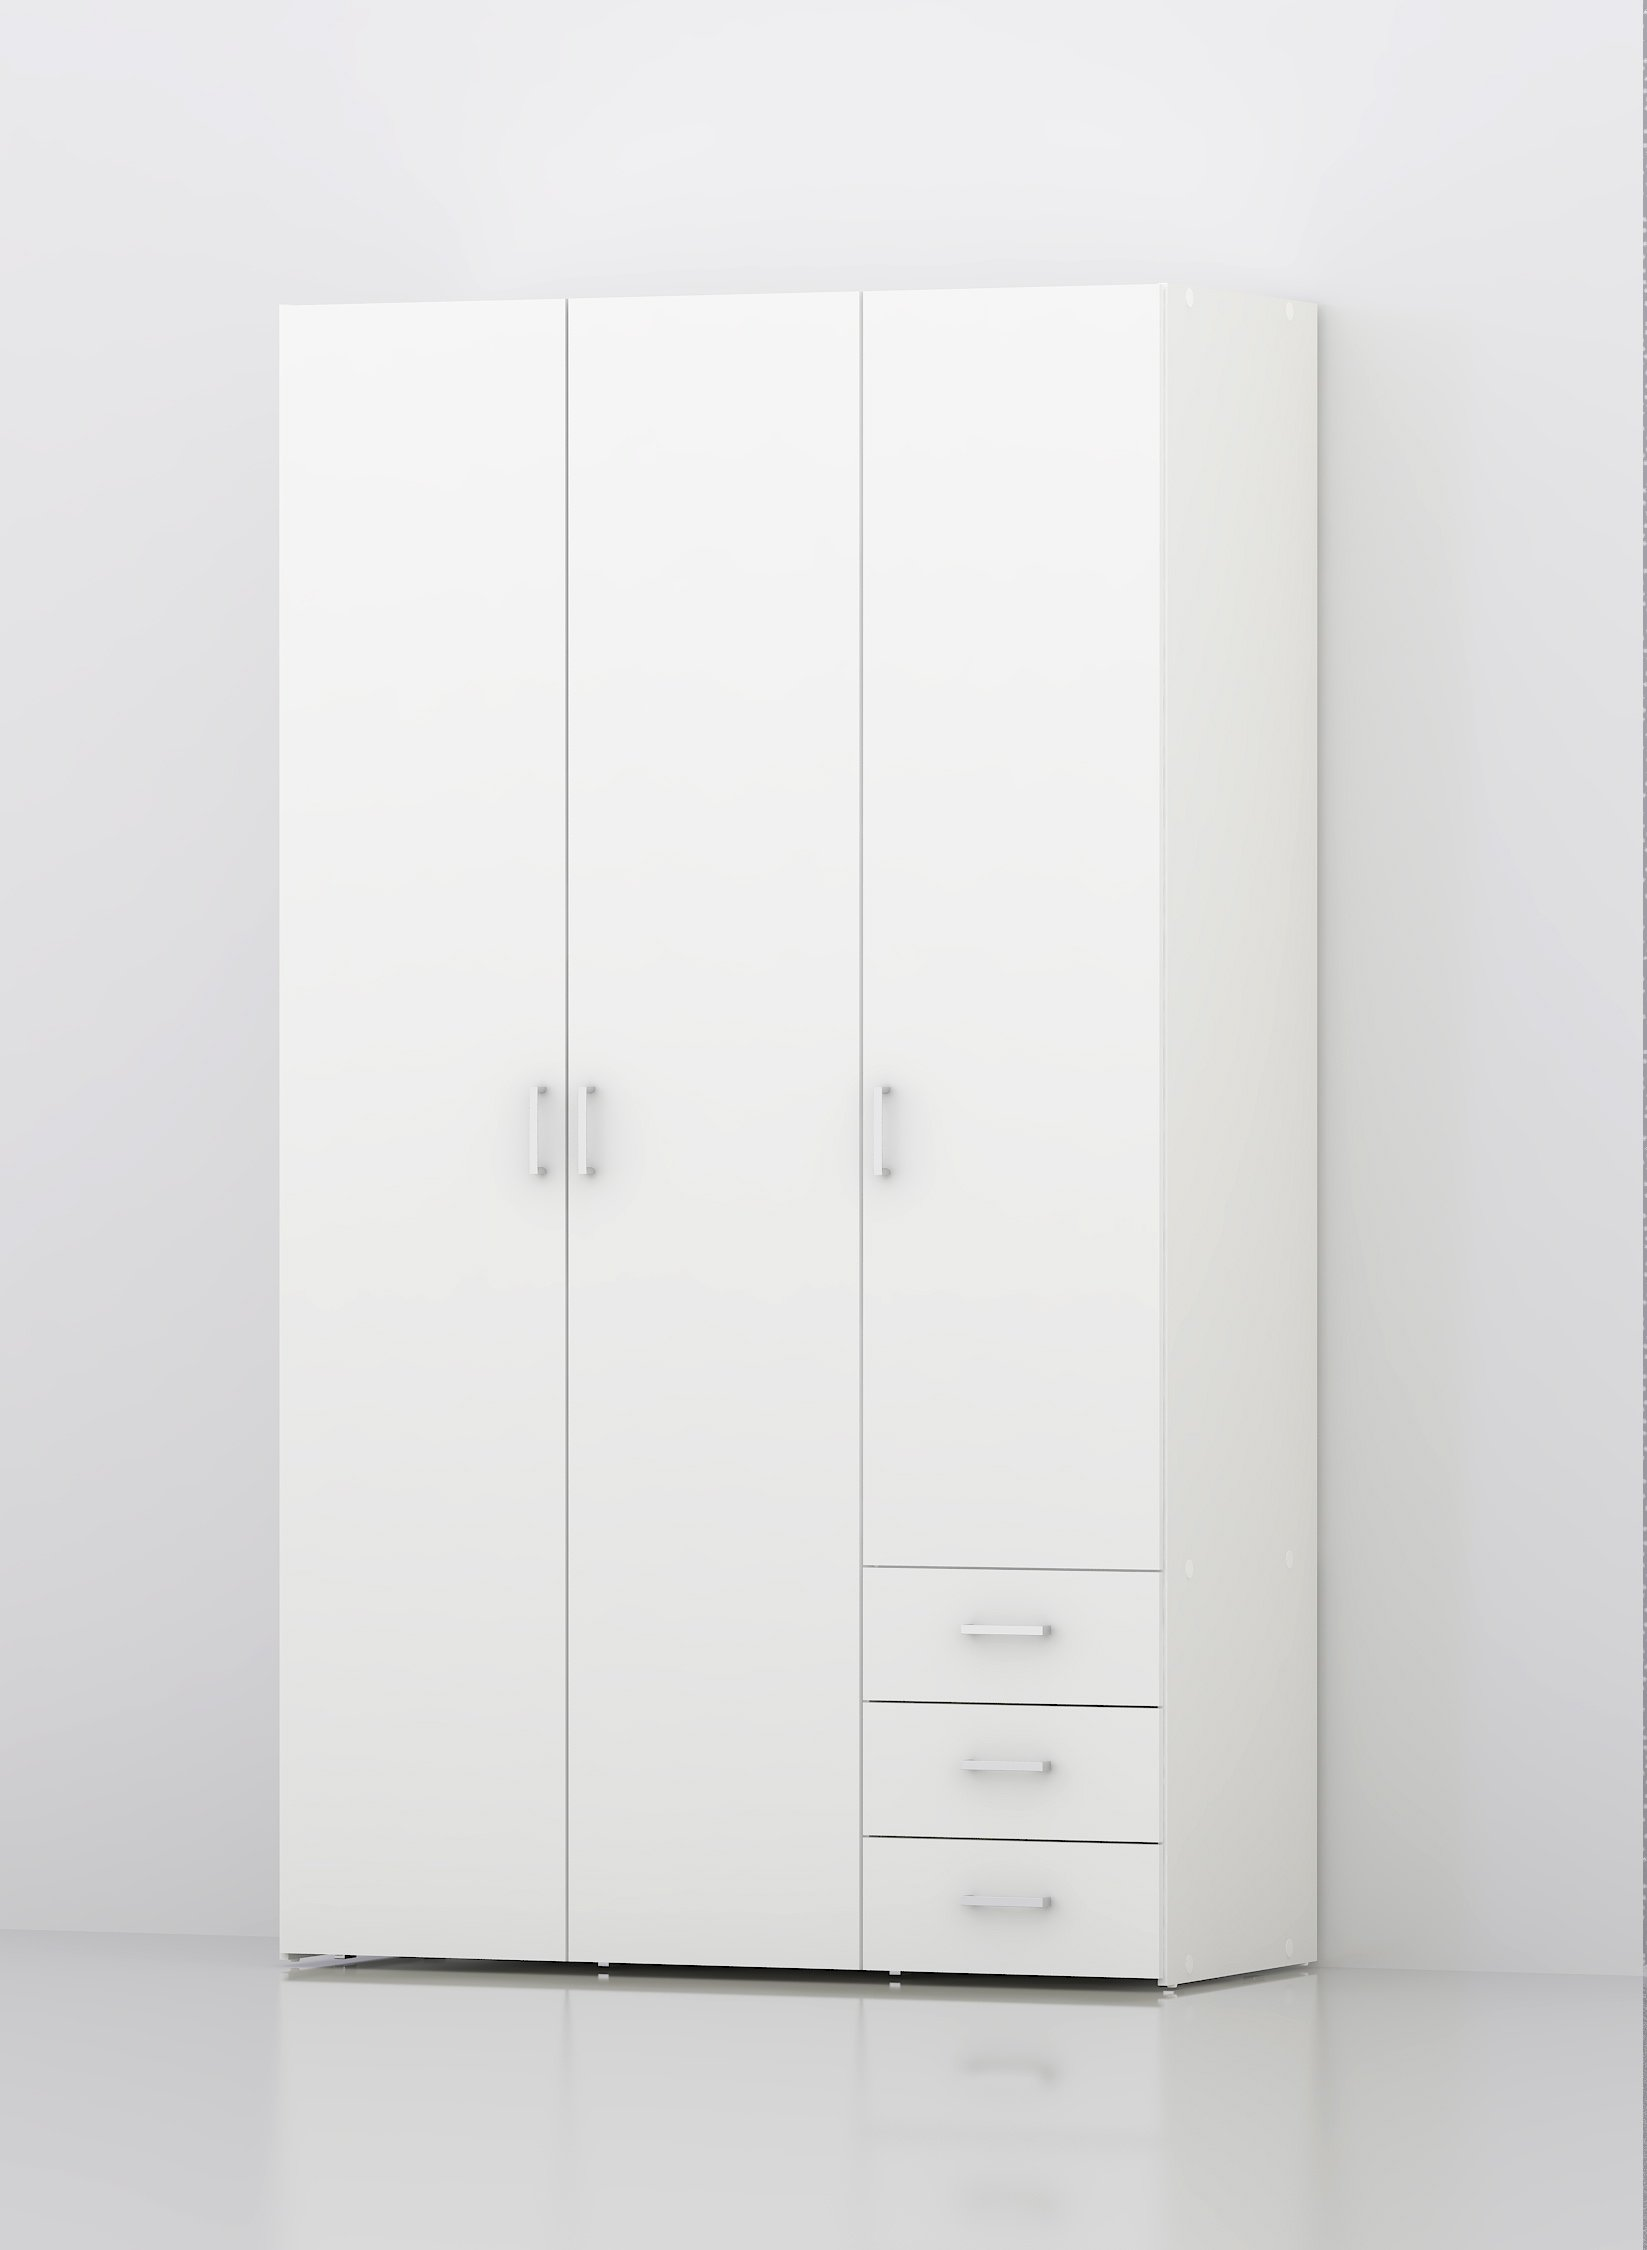 Tvilum 704094949 Space 3 Drawer and and 3 Door Wardrobe, White by Tvilum (Image #2)